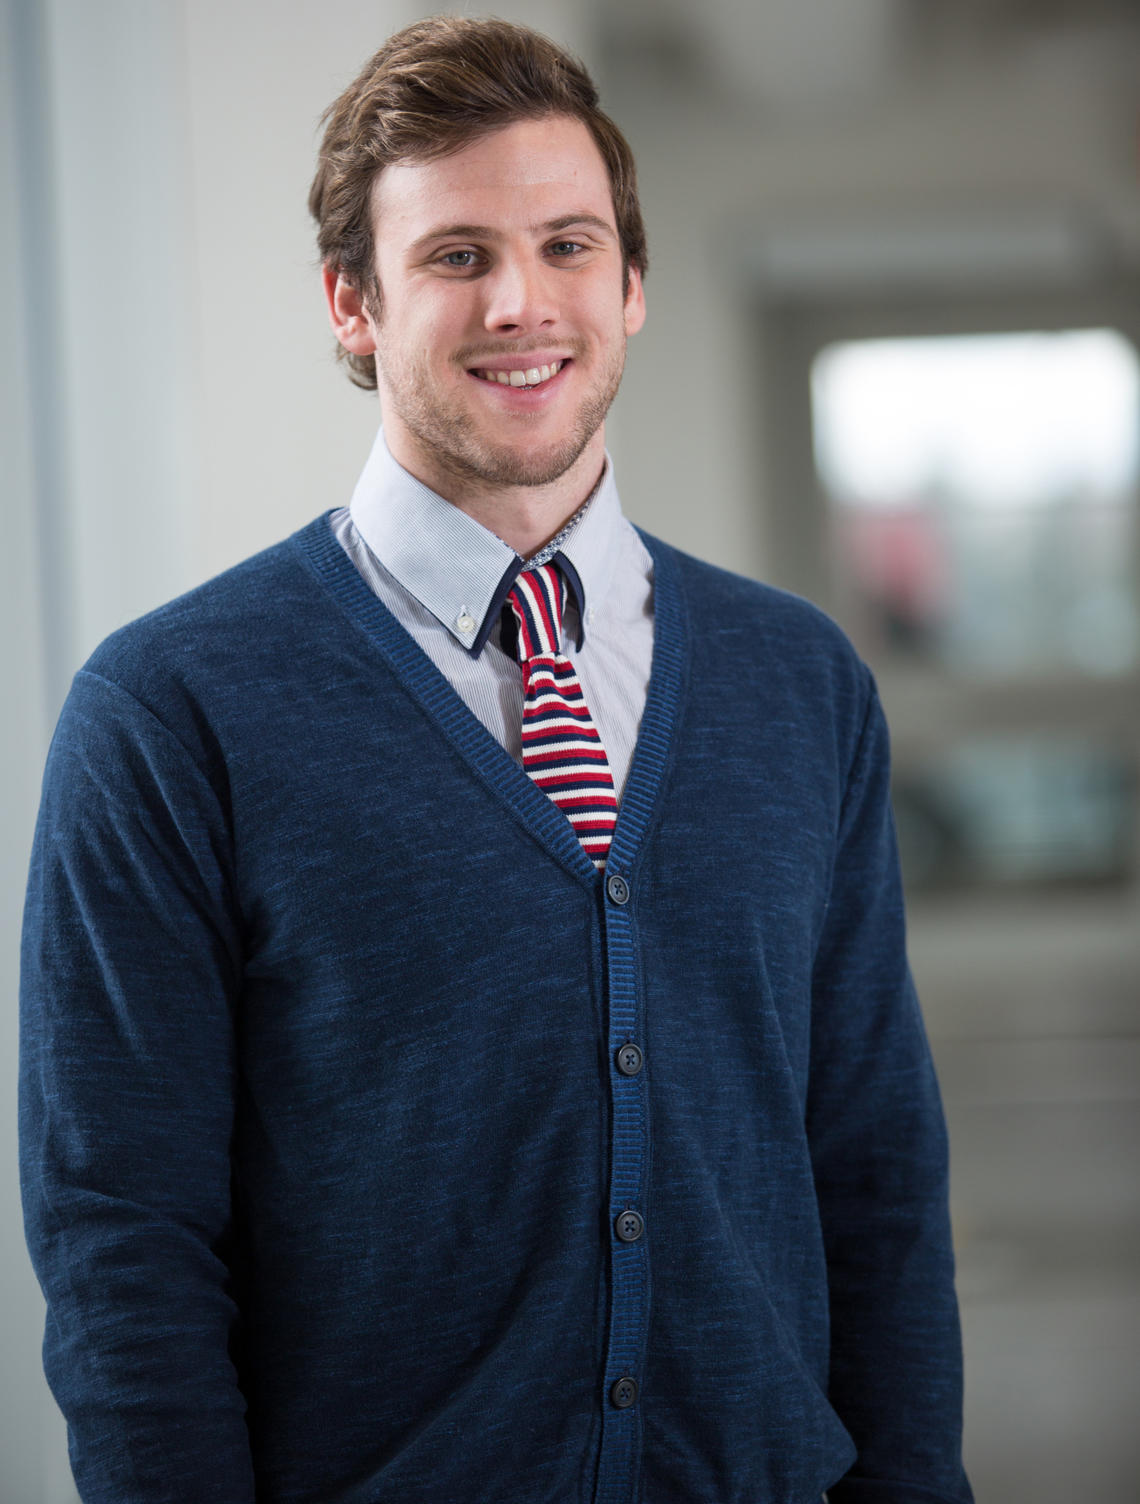 Through his five years at the University of Calgary, Bogdan Knezevic has excelled in athletics and academics, consistently maintaining a 4.0 GPA, earning him a place on the Dean's List.